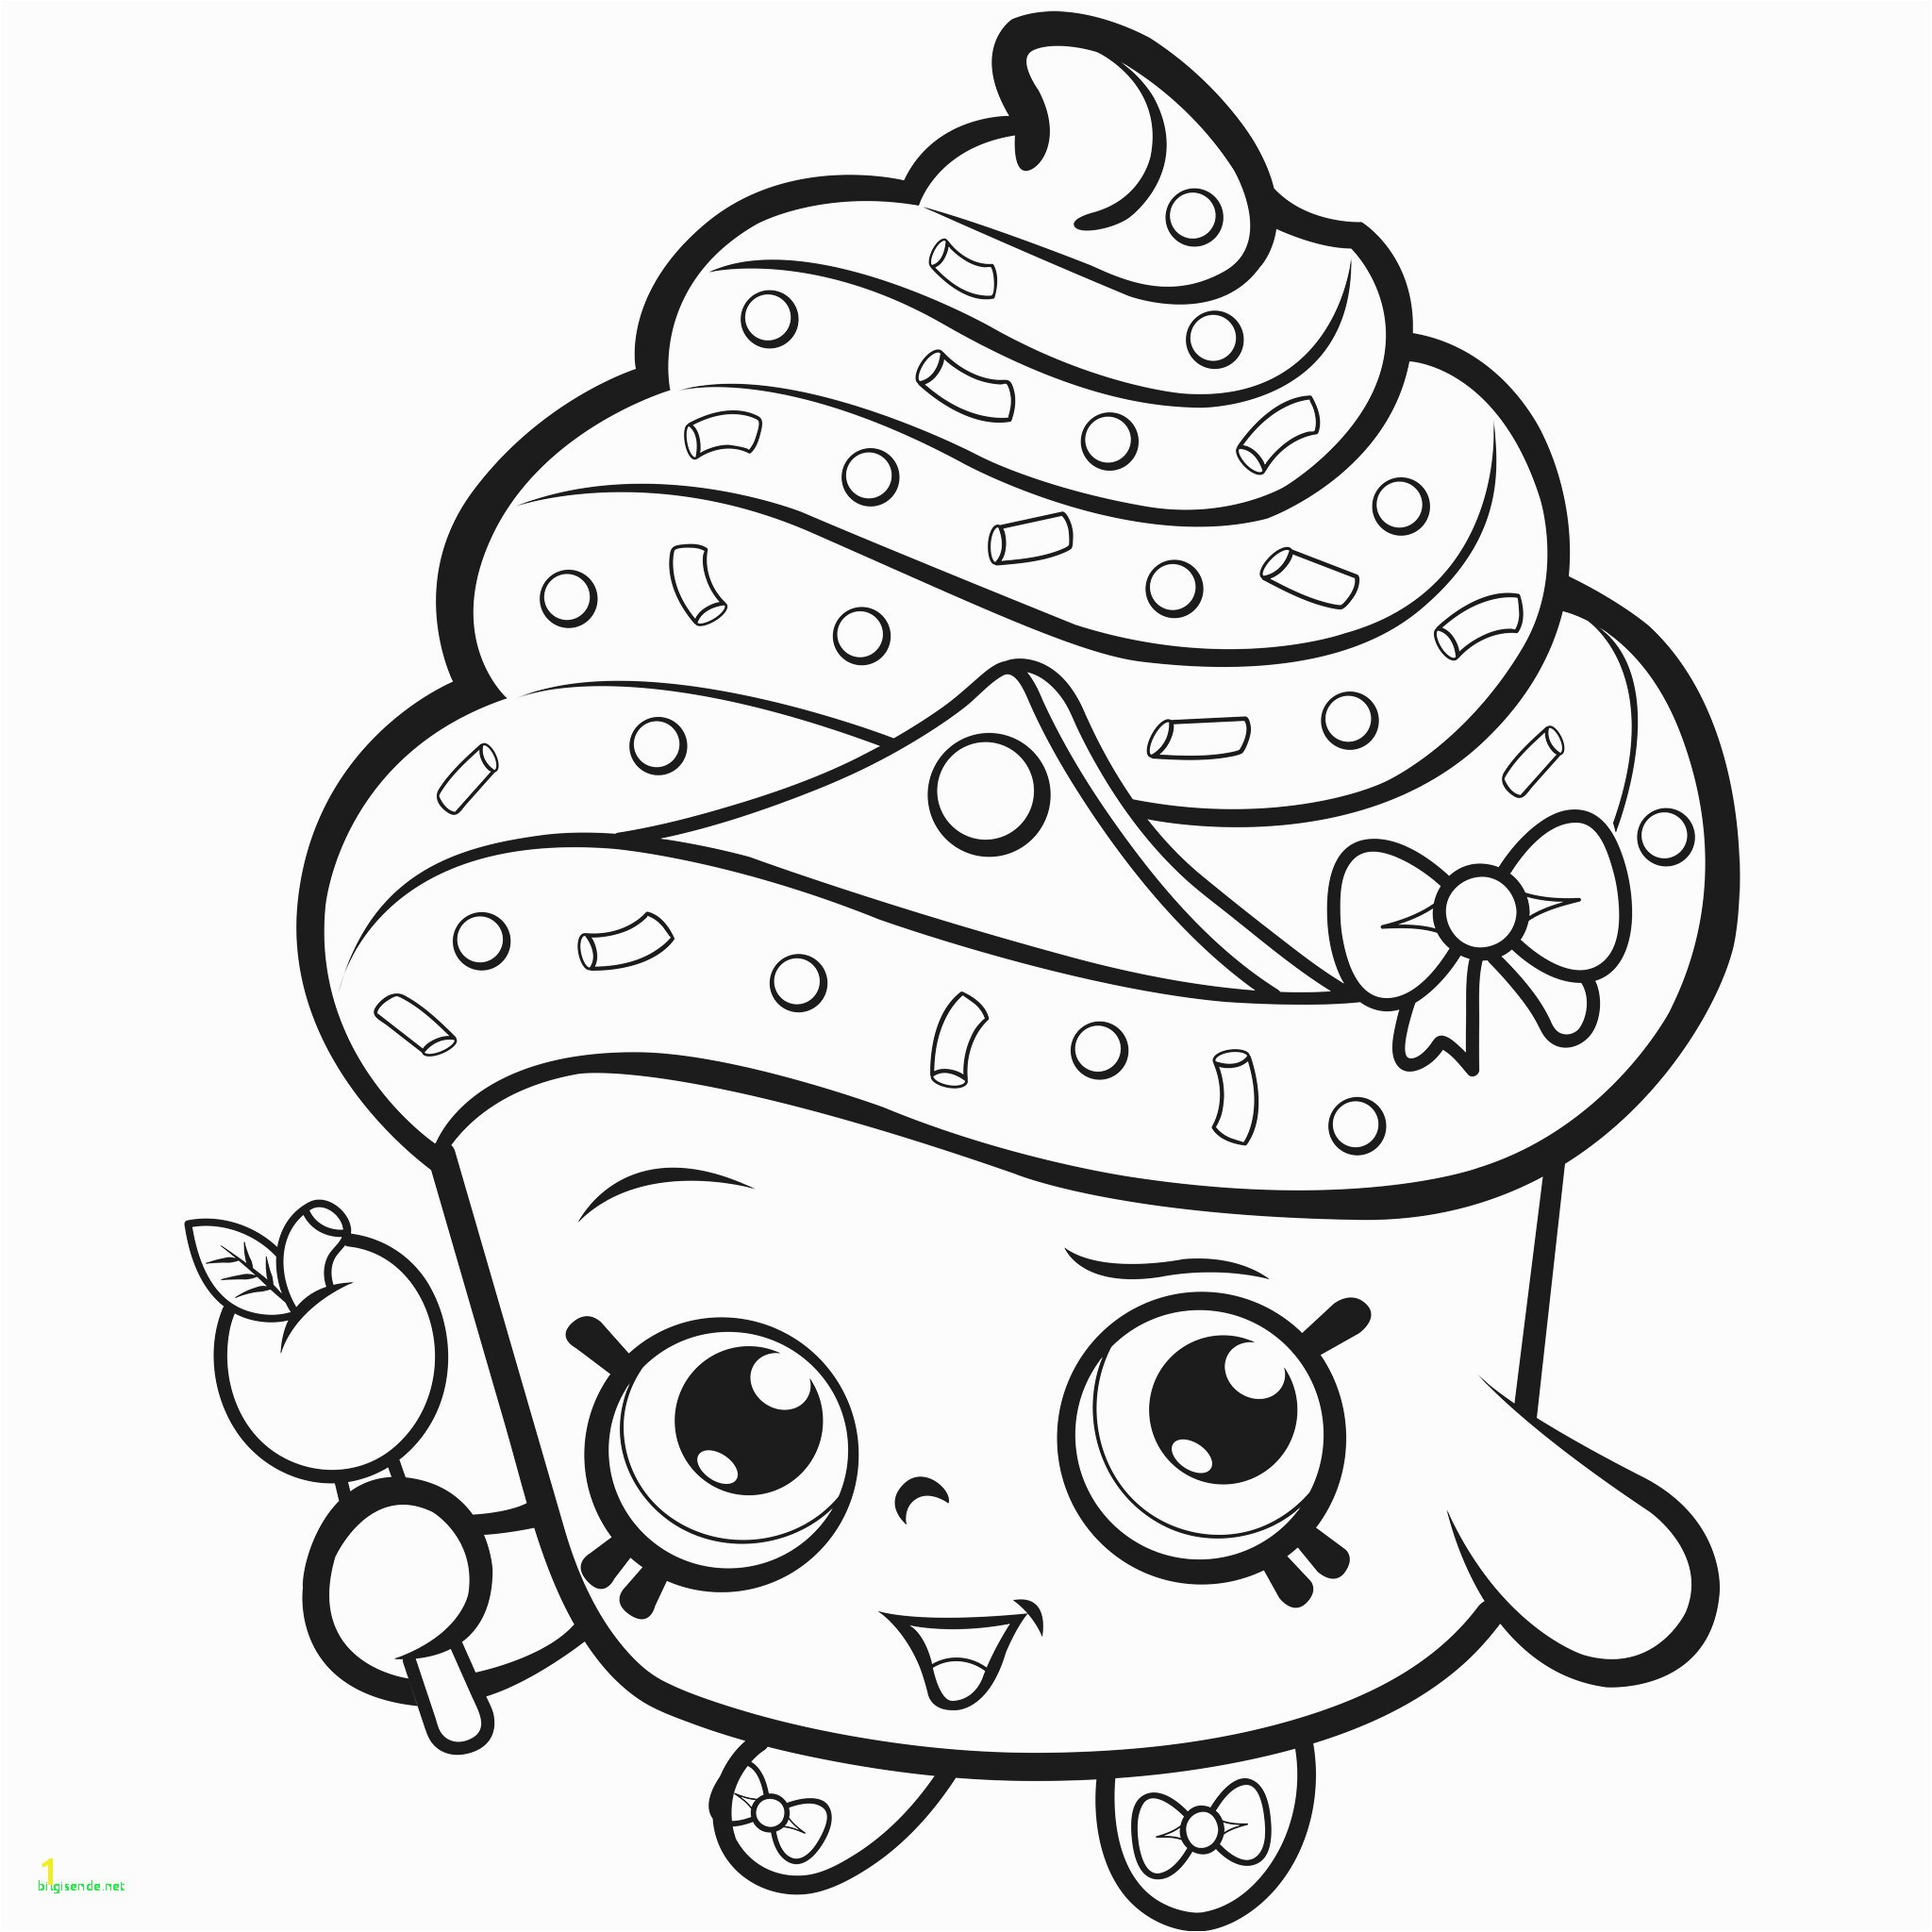 Coloring Pages for Girls Shopkins Printables Party Best Shopkins Coloring Pages Best Coloring Pages